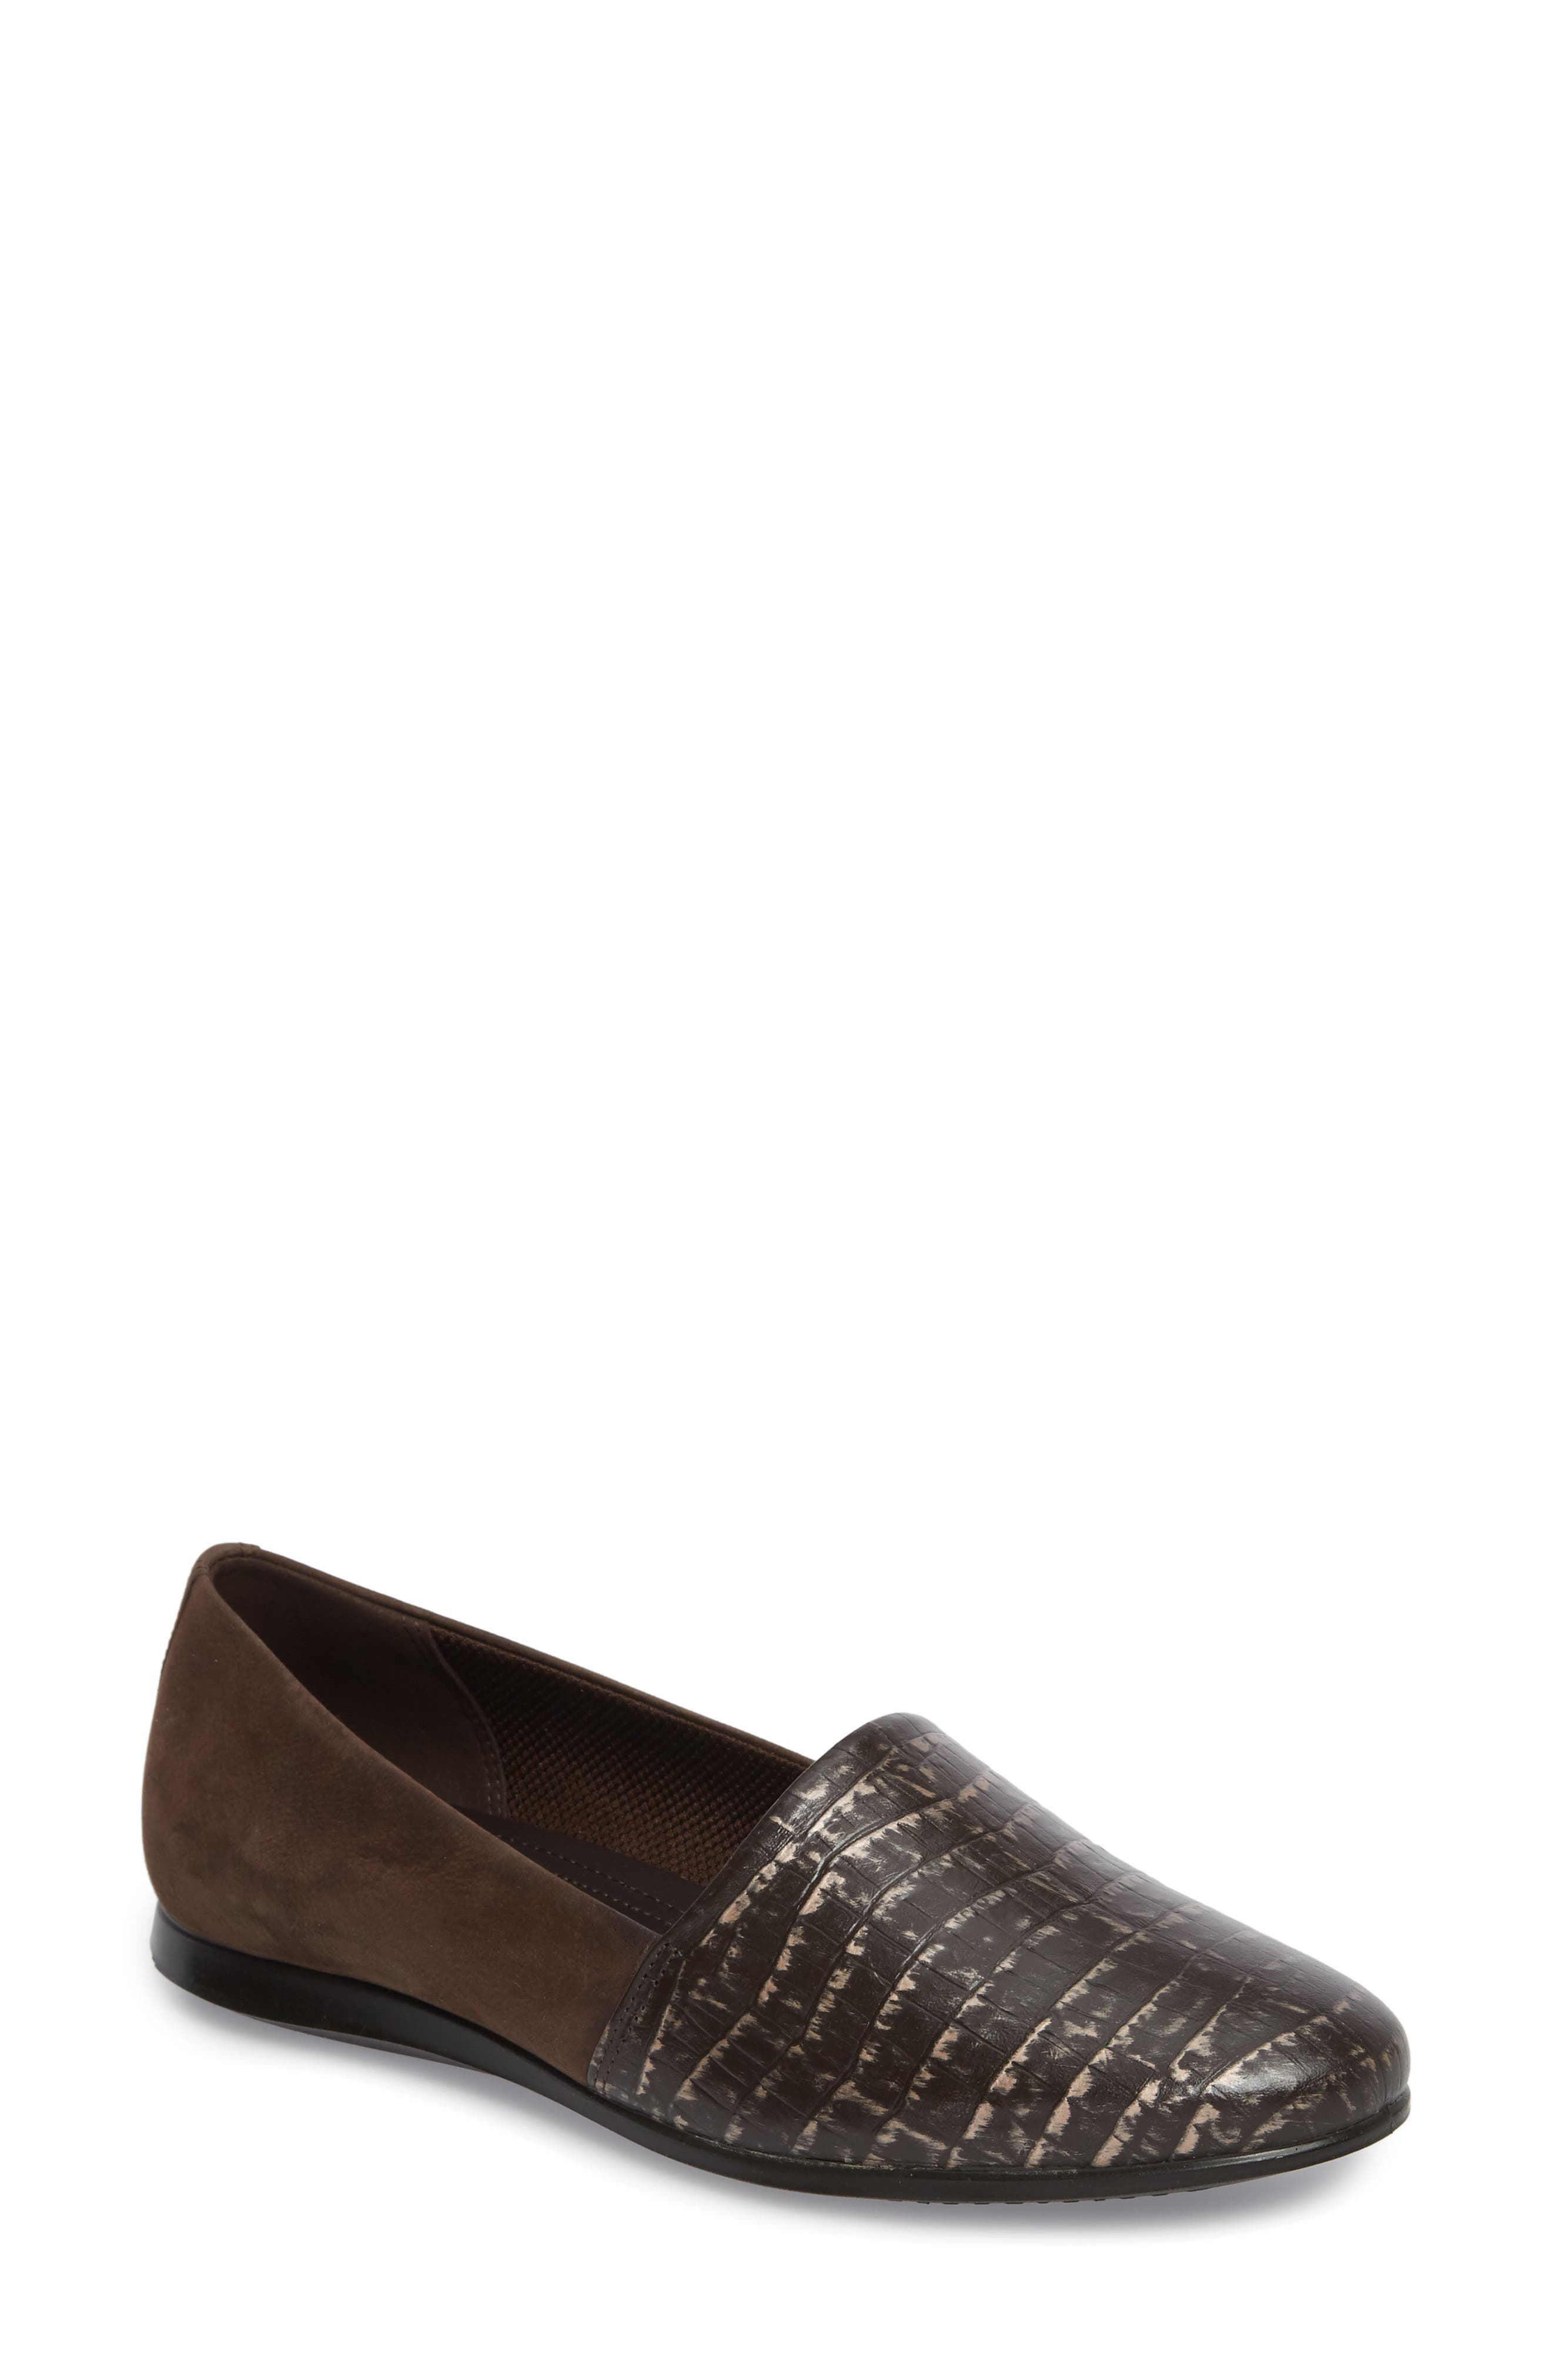 Touch 15 2.0 Flat,                         Main,                         color, Black-Copper Leather